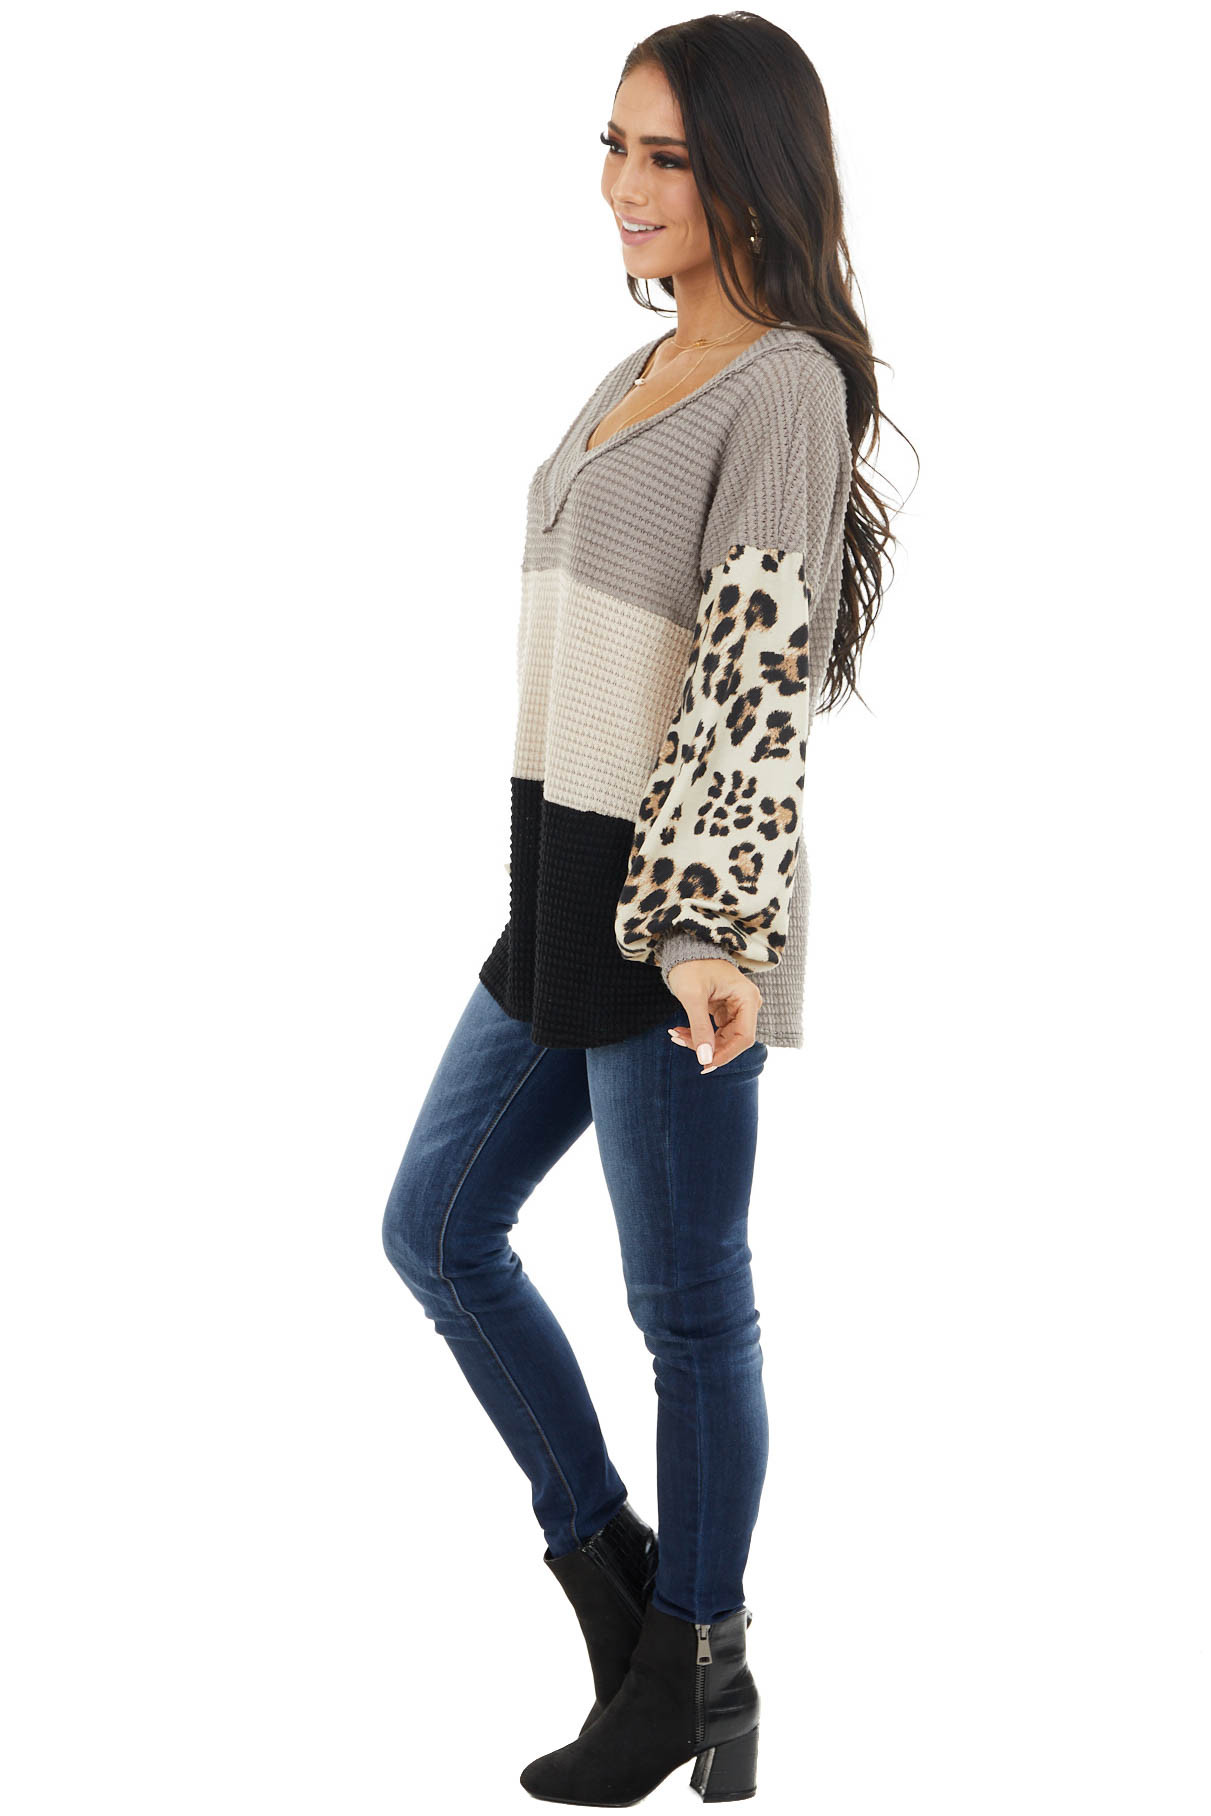 Taupe Colorblock Top with Contrast Leopard Print Sleeves